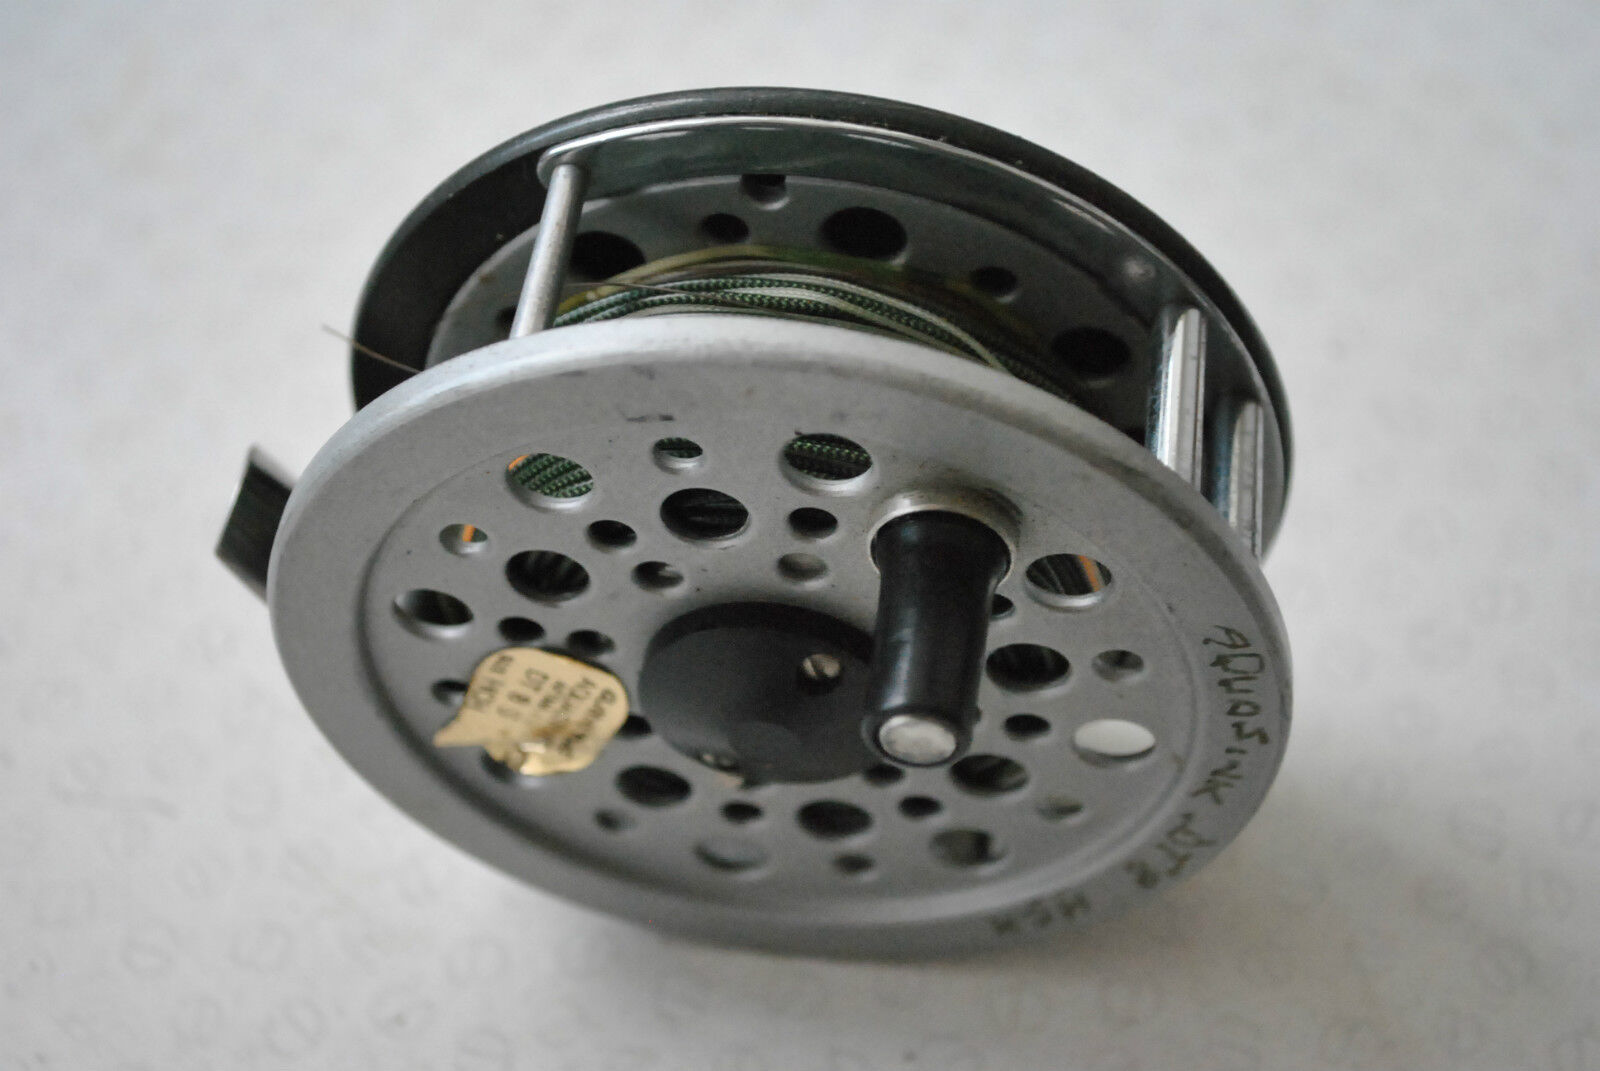 A VERY GOOD SHAKESPEARE  BEAULITE 3 5 8 TROUT FLY REEL & LINE  official authorization